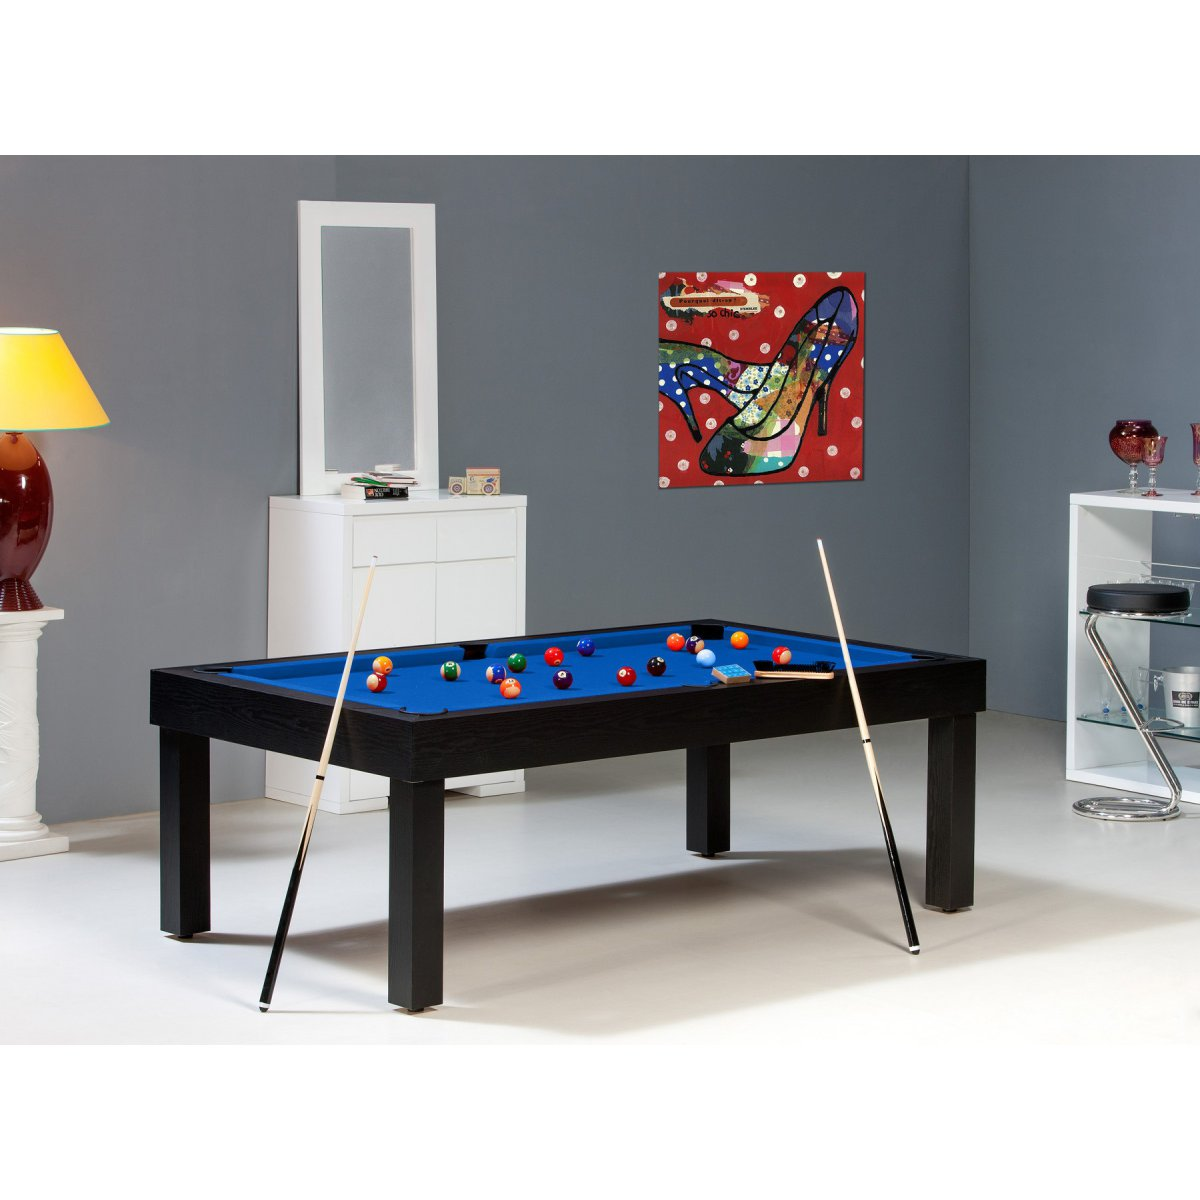 Billard table americain billards de france - Billard americain design ...